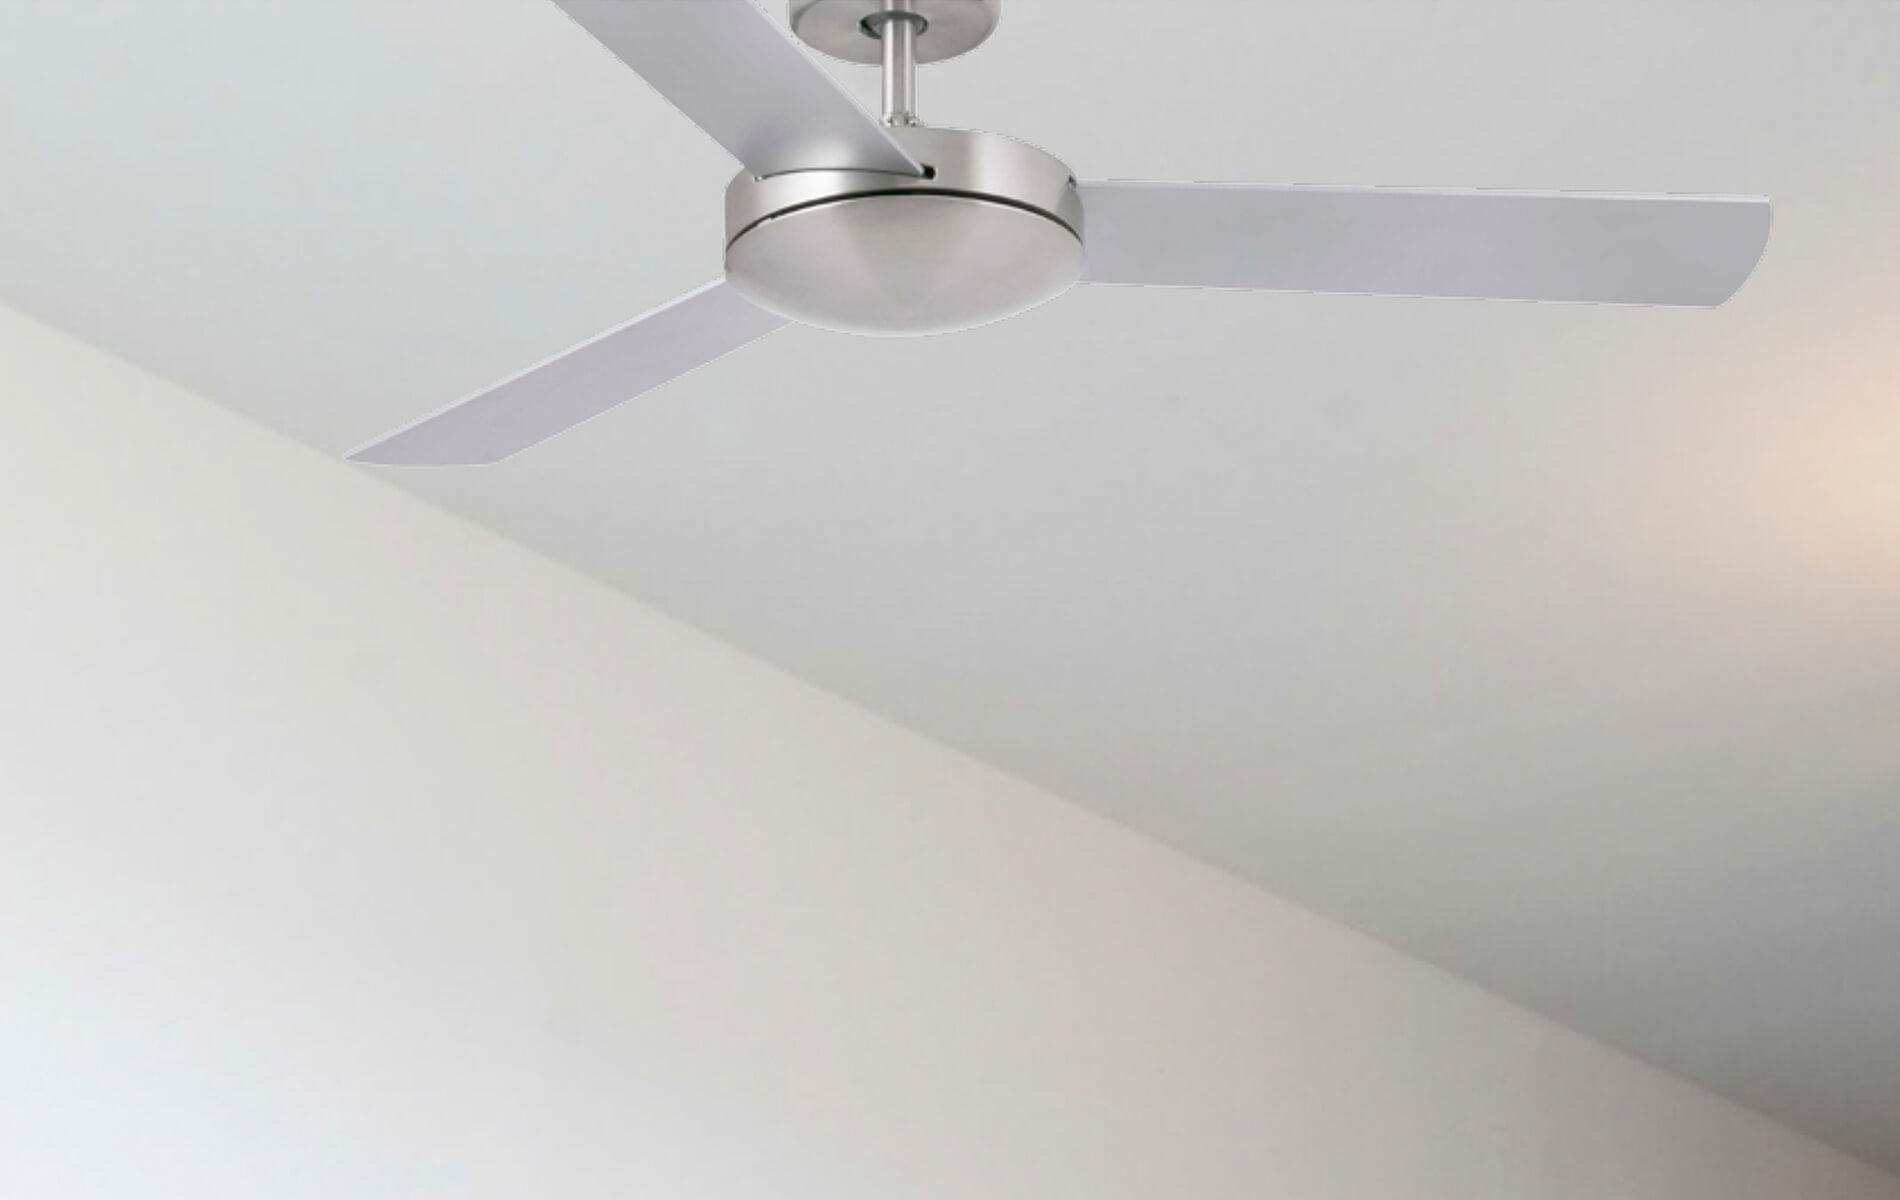 More information of Faro MINI MALLORCA ceiling fan.